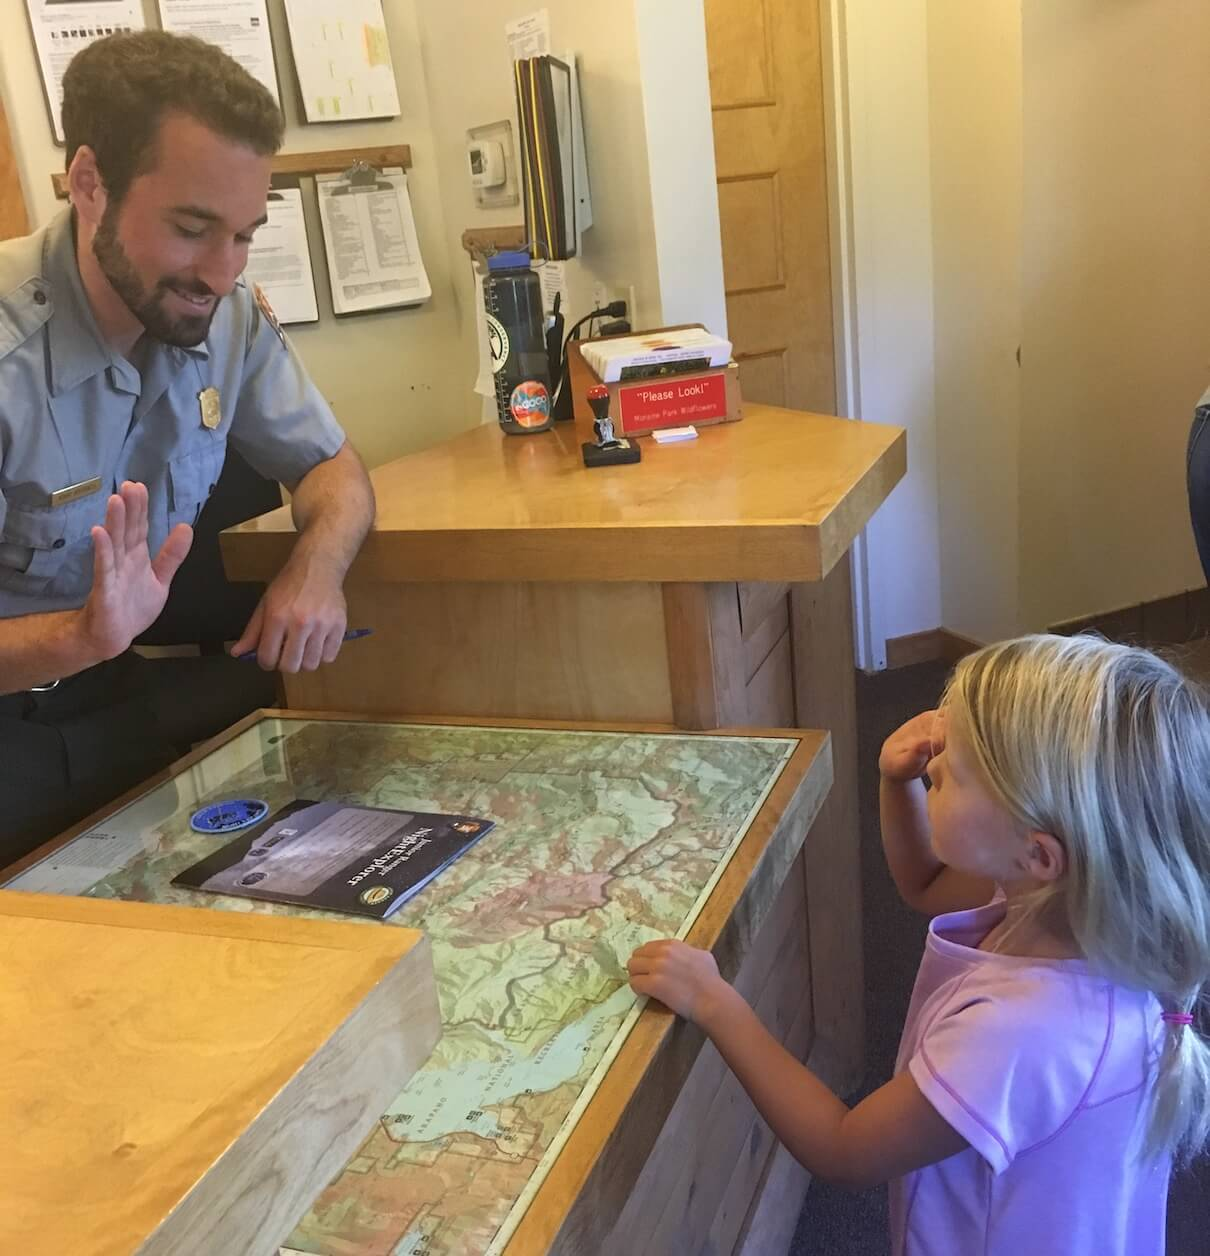 The author's daughter, getting her Night Explorer Jr. Ranger patch. Photo by Courtney Johnson.